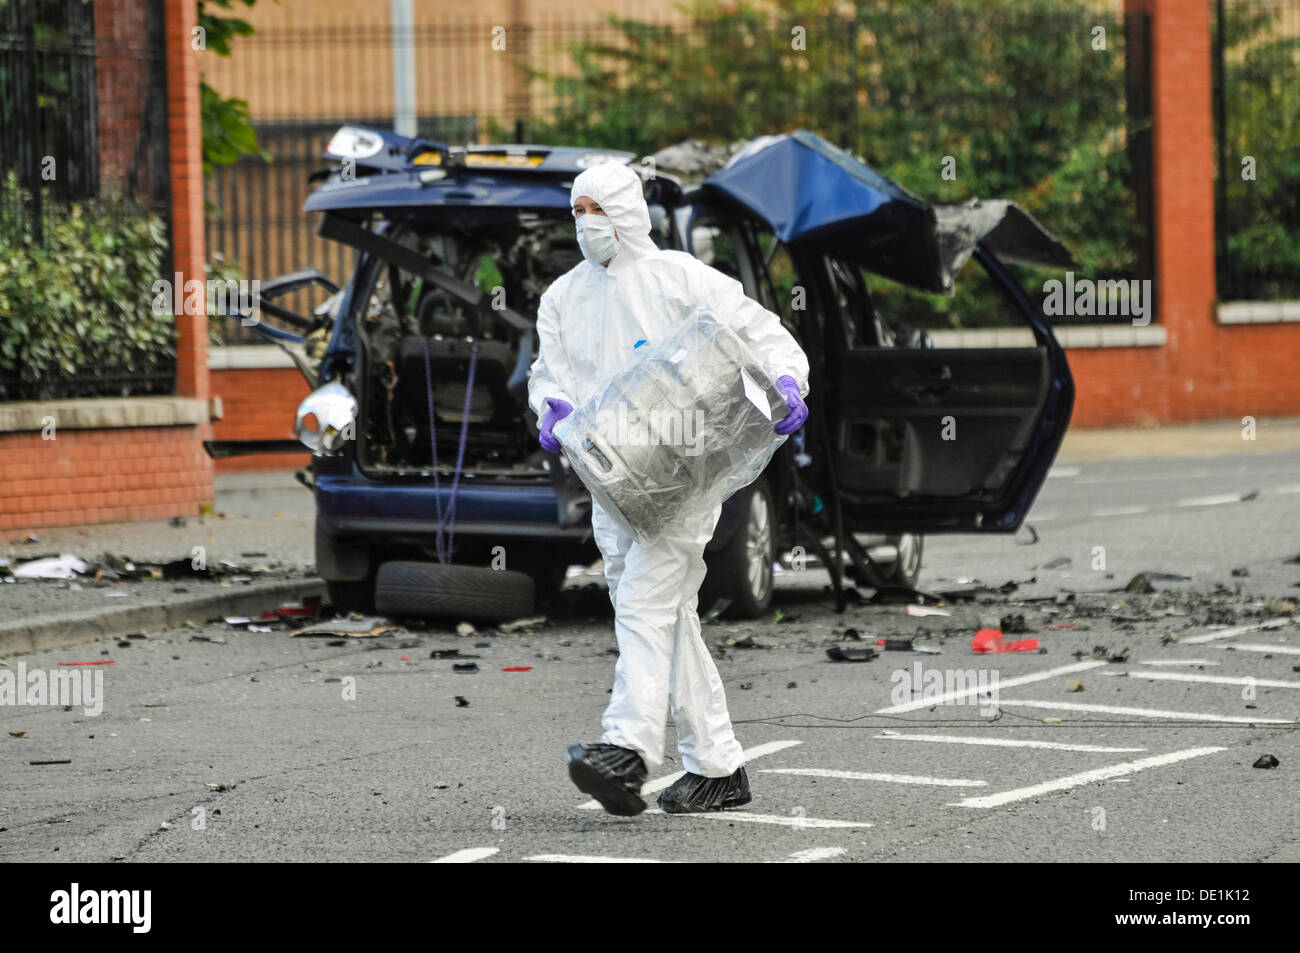 Belfast, Northern Ireland. 10th September 2013 - A PSNI forensics officer carries away the beer keg which was in - Stock Image